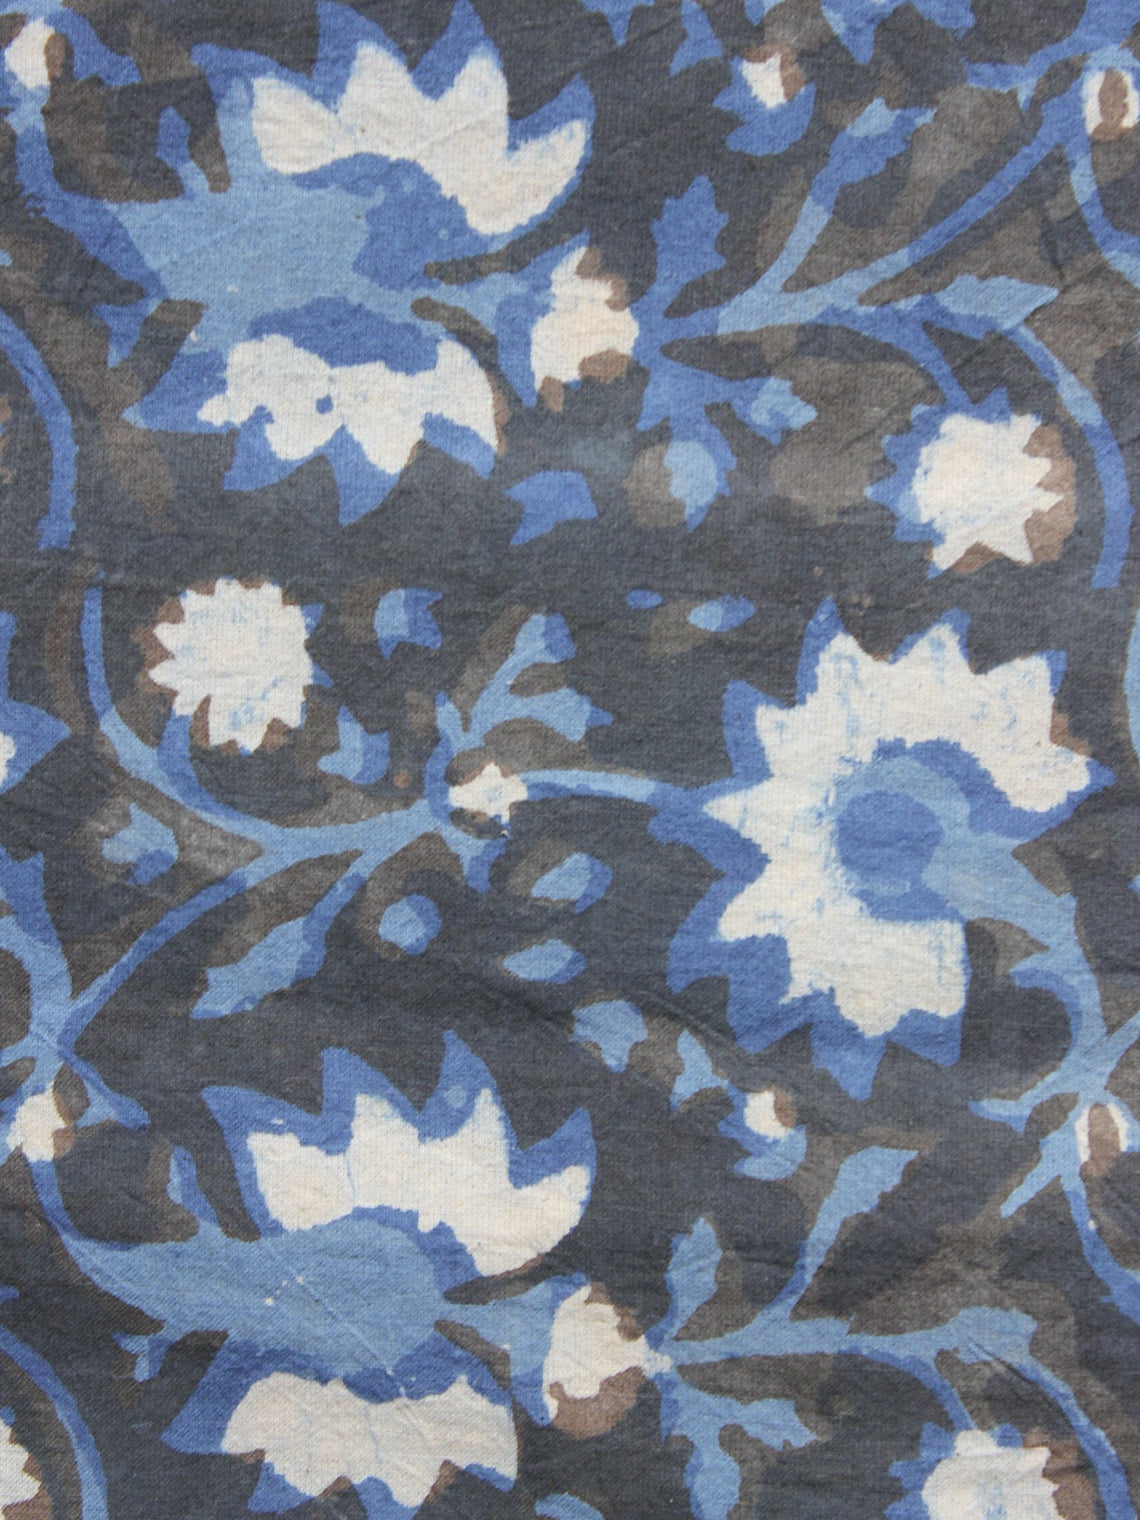 Indigo Ivory Grey Hand Block Printed Cotton Fabric Per Meter - F001F877